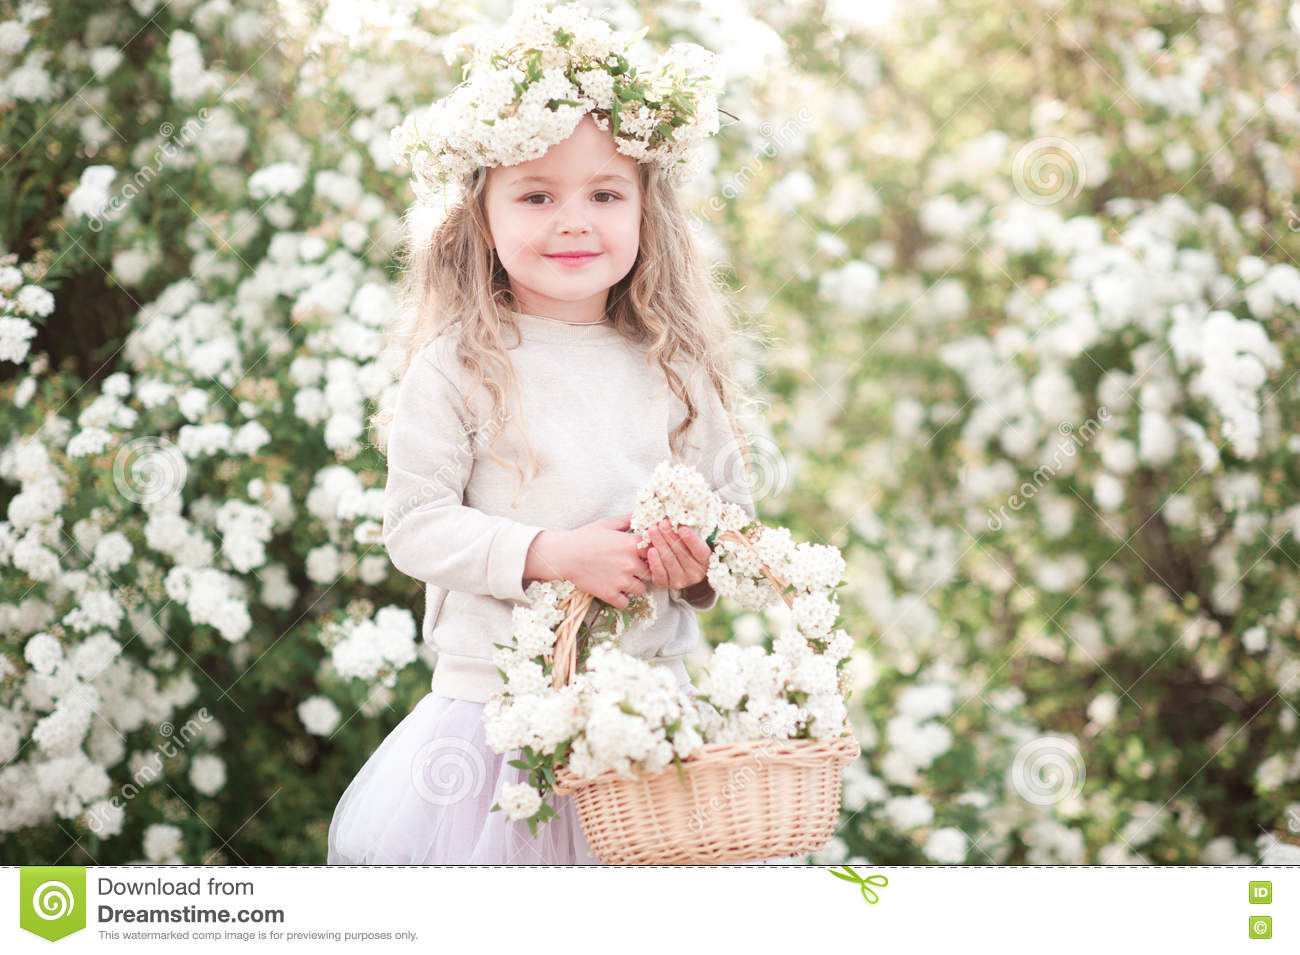 Cute baby girl with flowers in garden